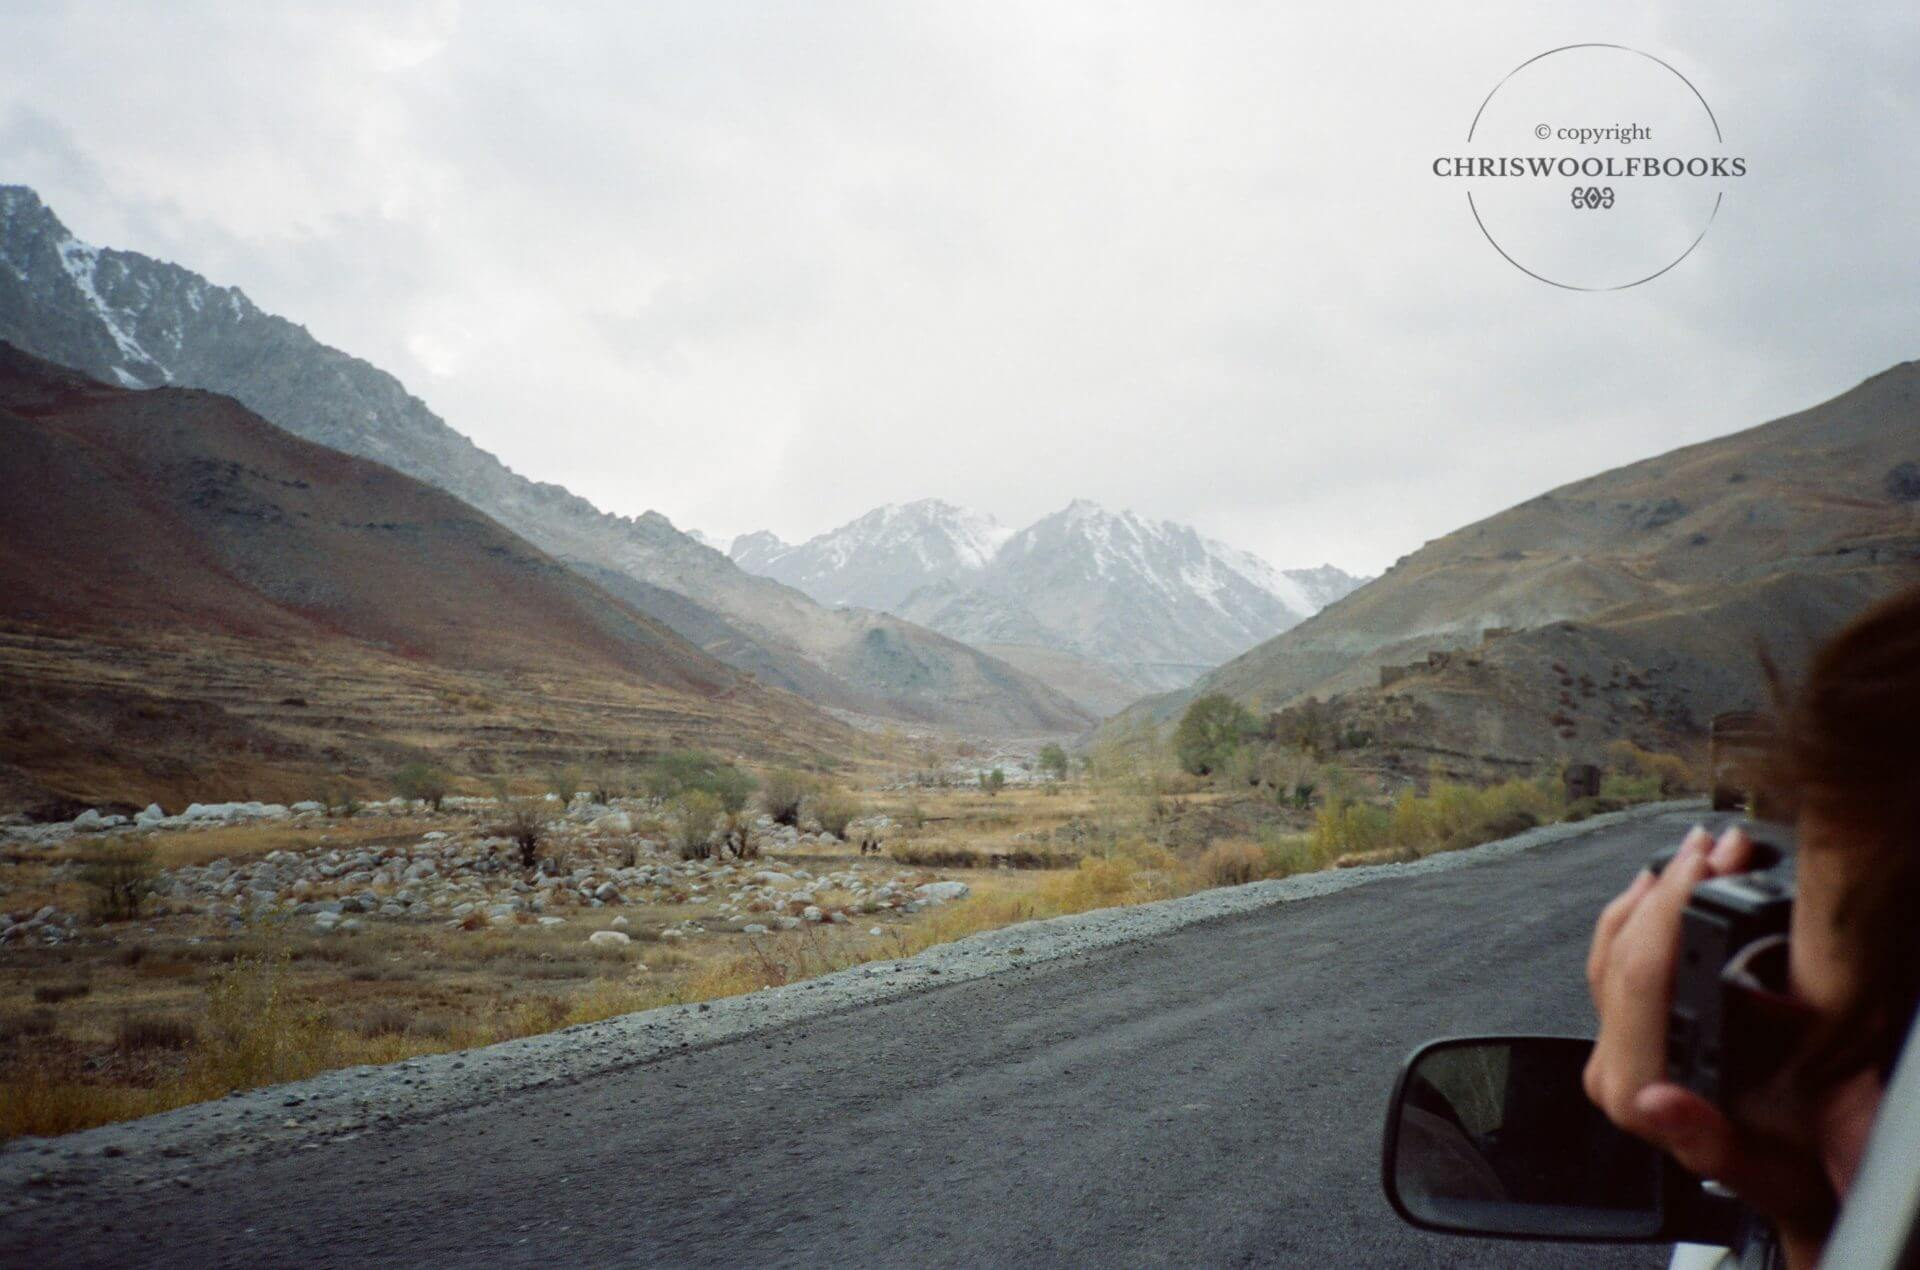 The city of Pul-i-Khumri commands the northern end of the strategically vital Salang Valley, pictured here.